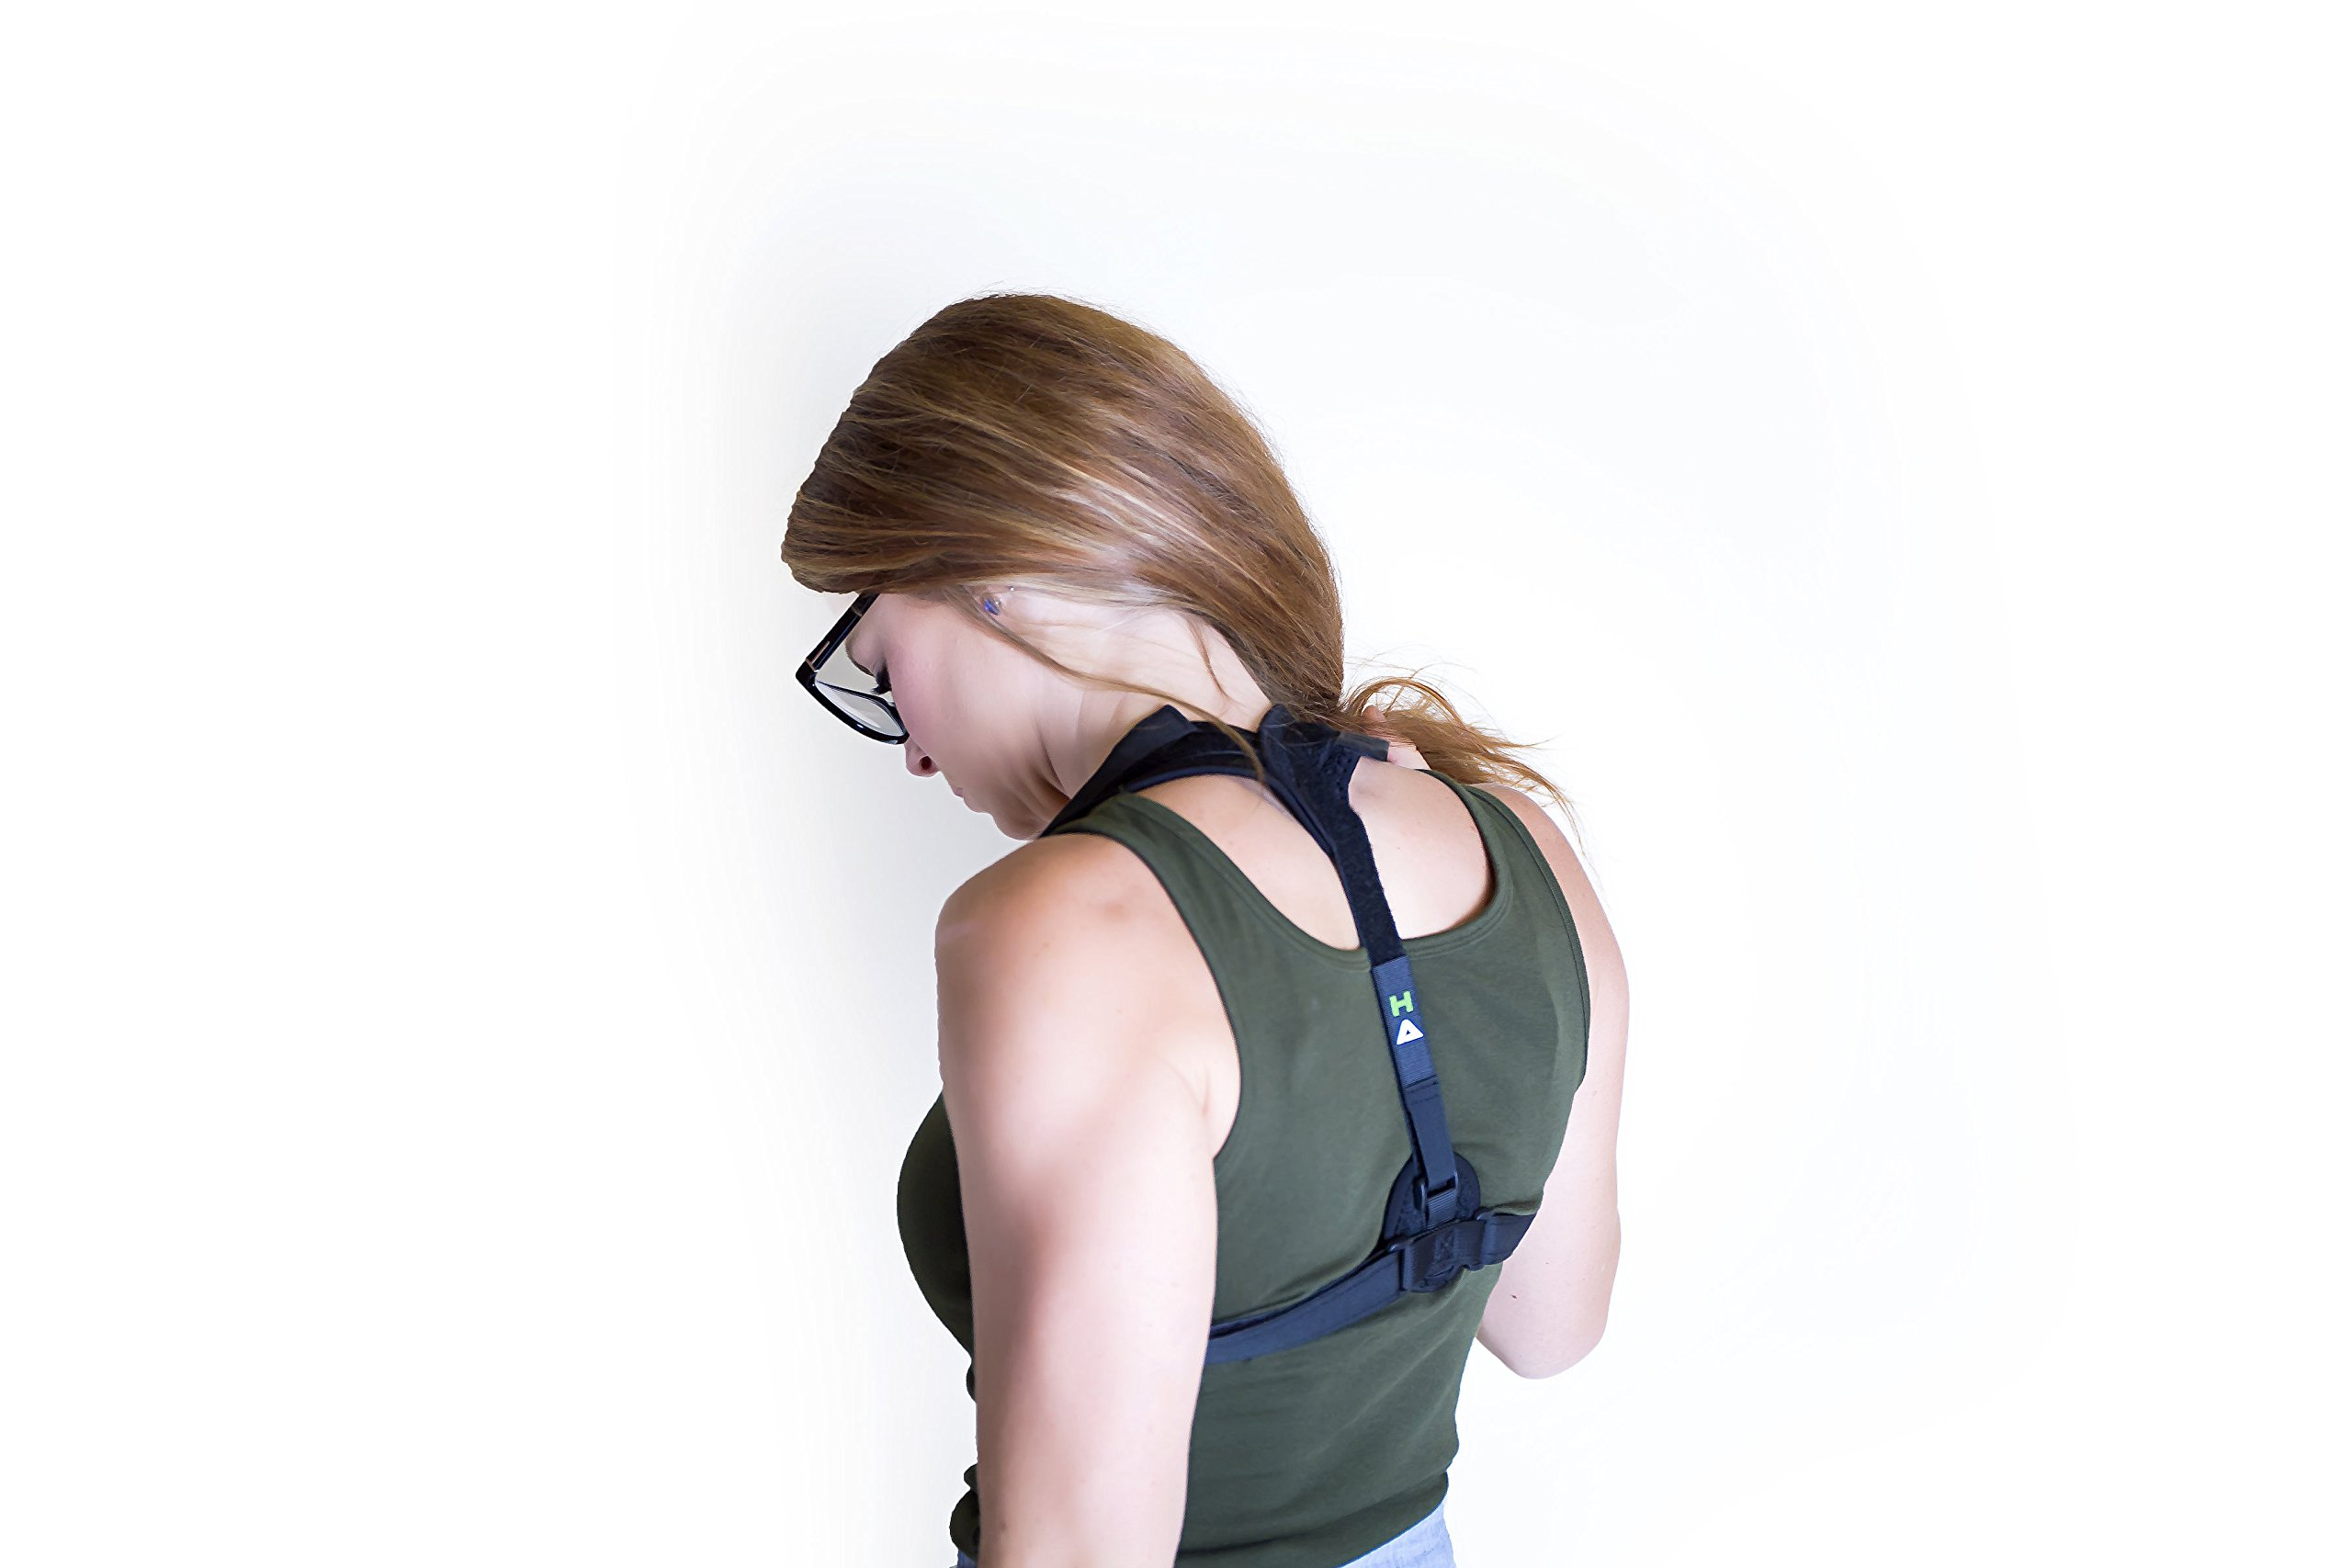 Hardihood Athletics Posture Corrector - Orthopedic Trainer Brace for Women or Men - Comfortable Breathable Device to Fix Upper Lower Back Shoulder and Neck Pain - Adjustable Clavicle Support Bands